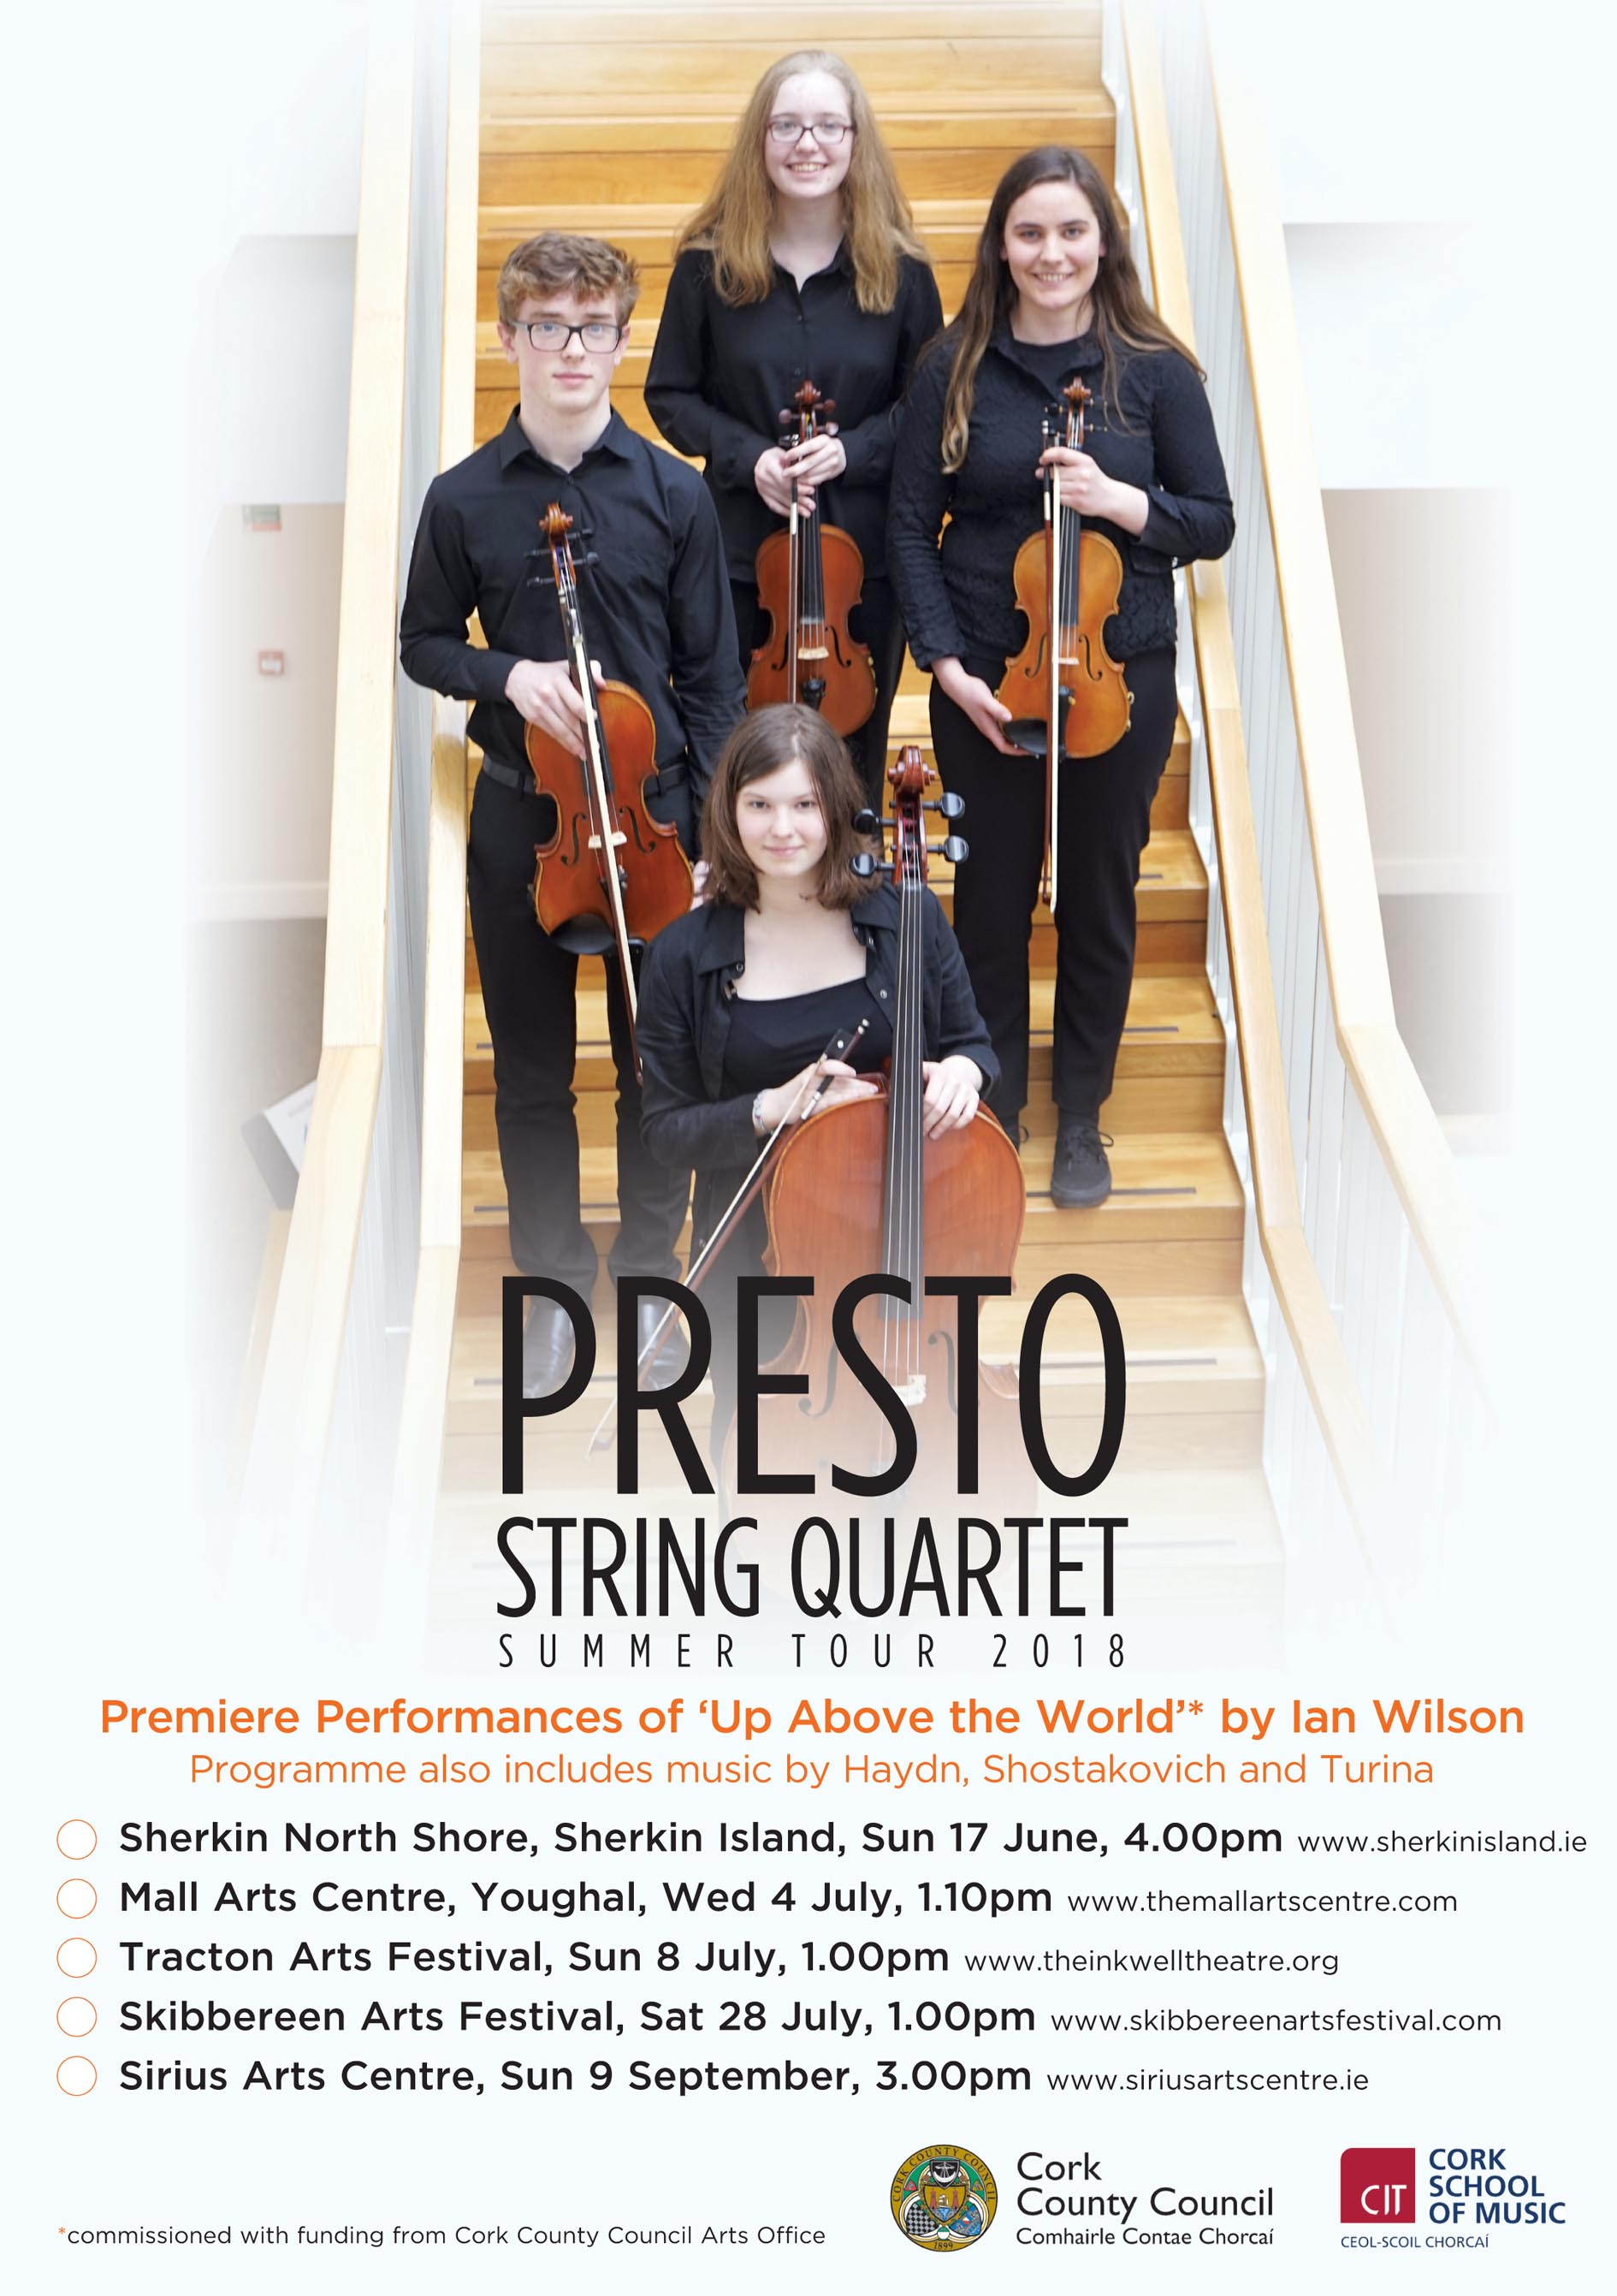 Presto String Quarter Summer Tour 2018